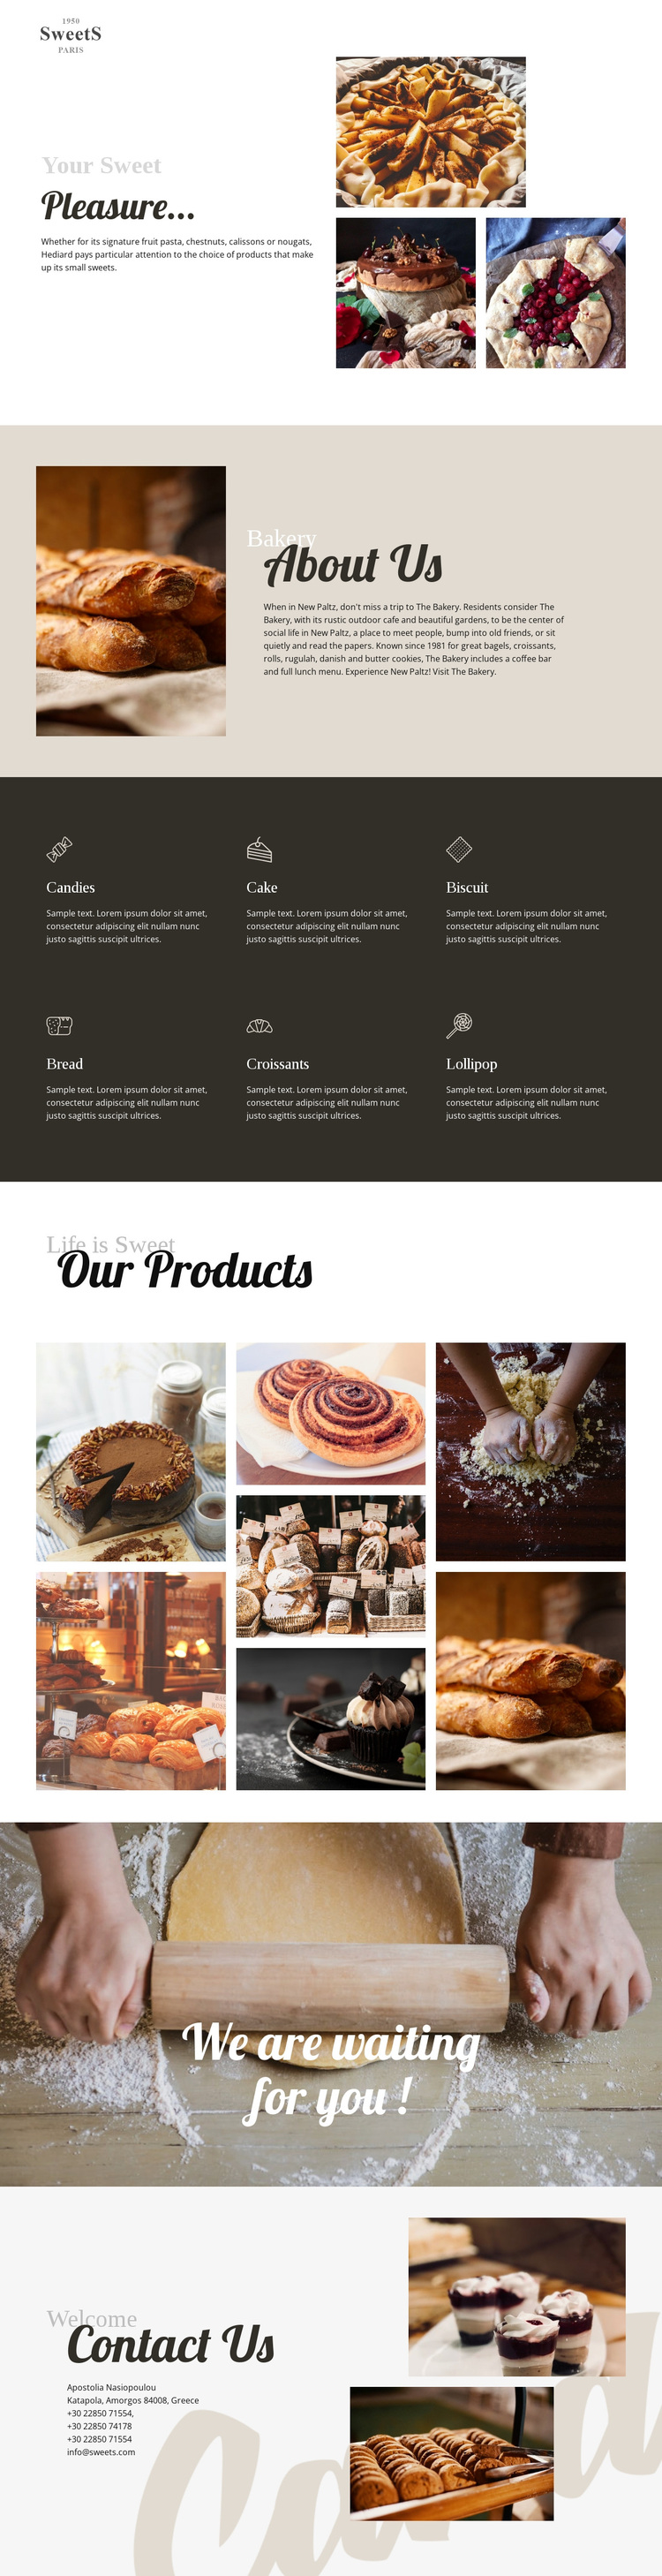 Cakes and baking food Joomla Page Builder